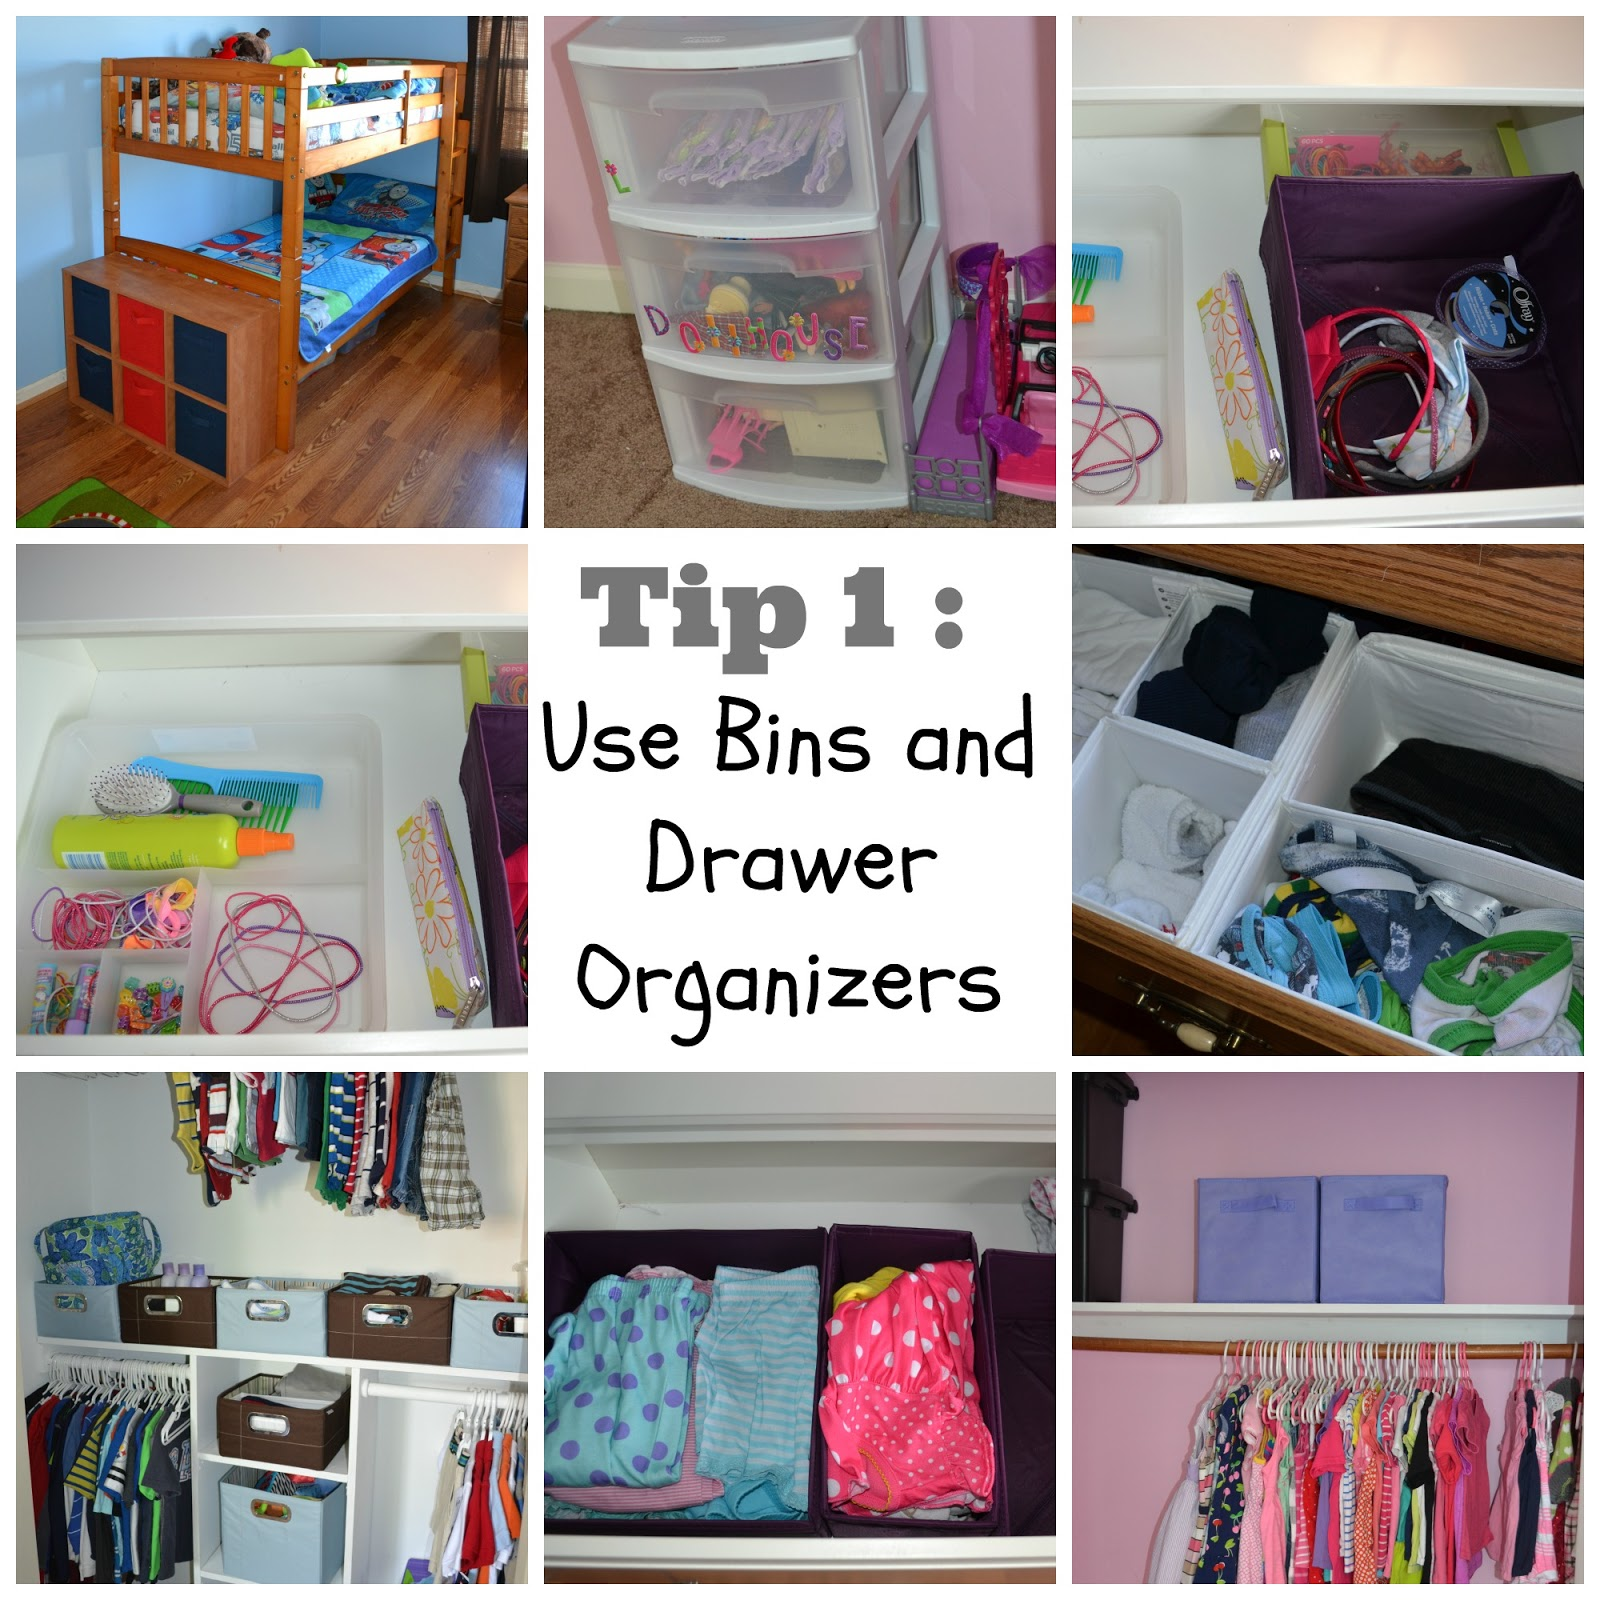 Kids Bedroom Organization kids bedroom organization